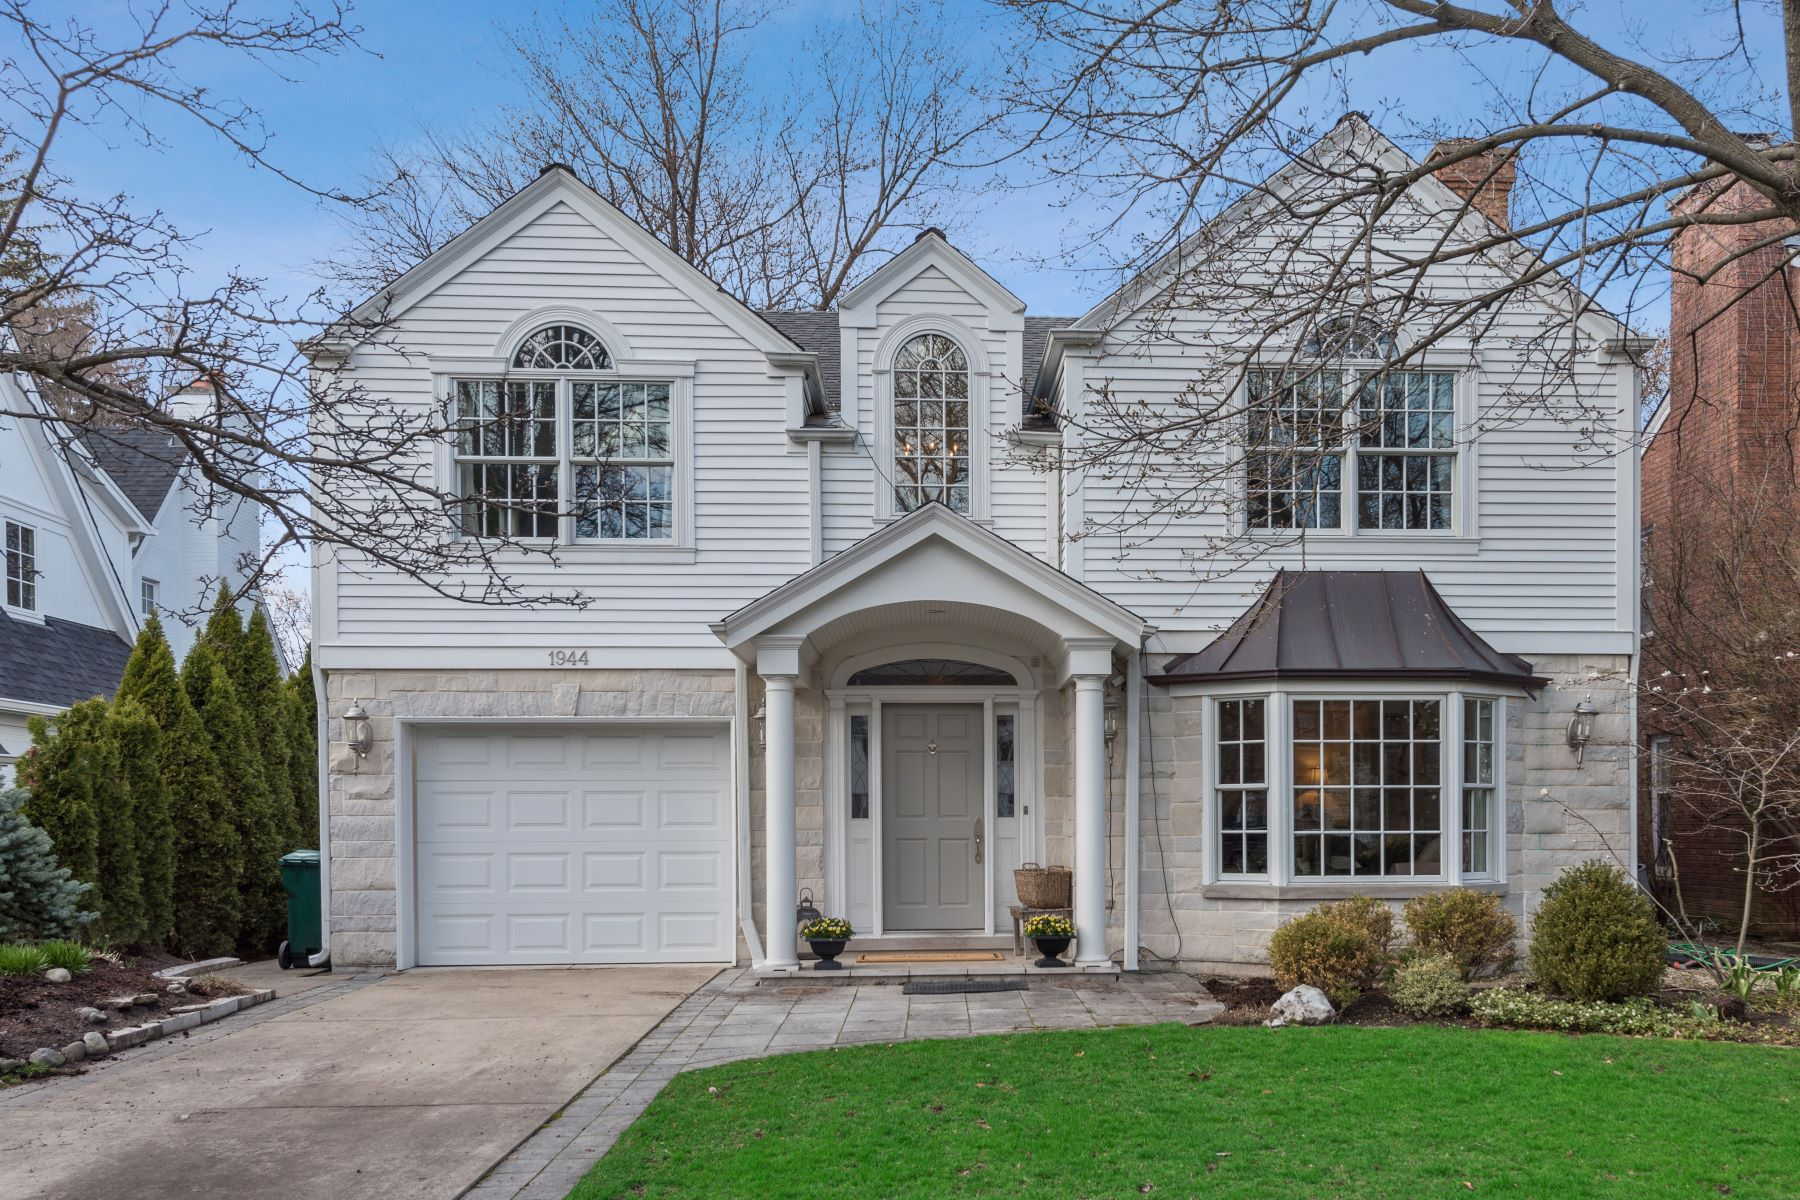 Single Family Home for Active at Stunning Classic Colonial 1944 Chestnut Avenue Wilmette, Illinois 60091 United States